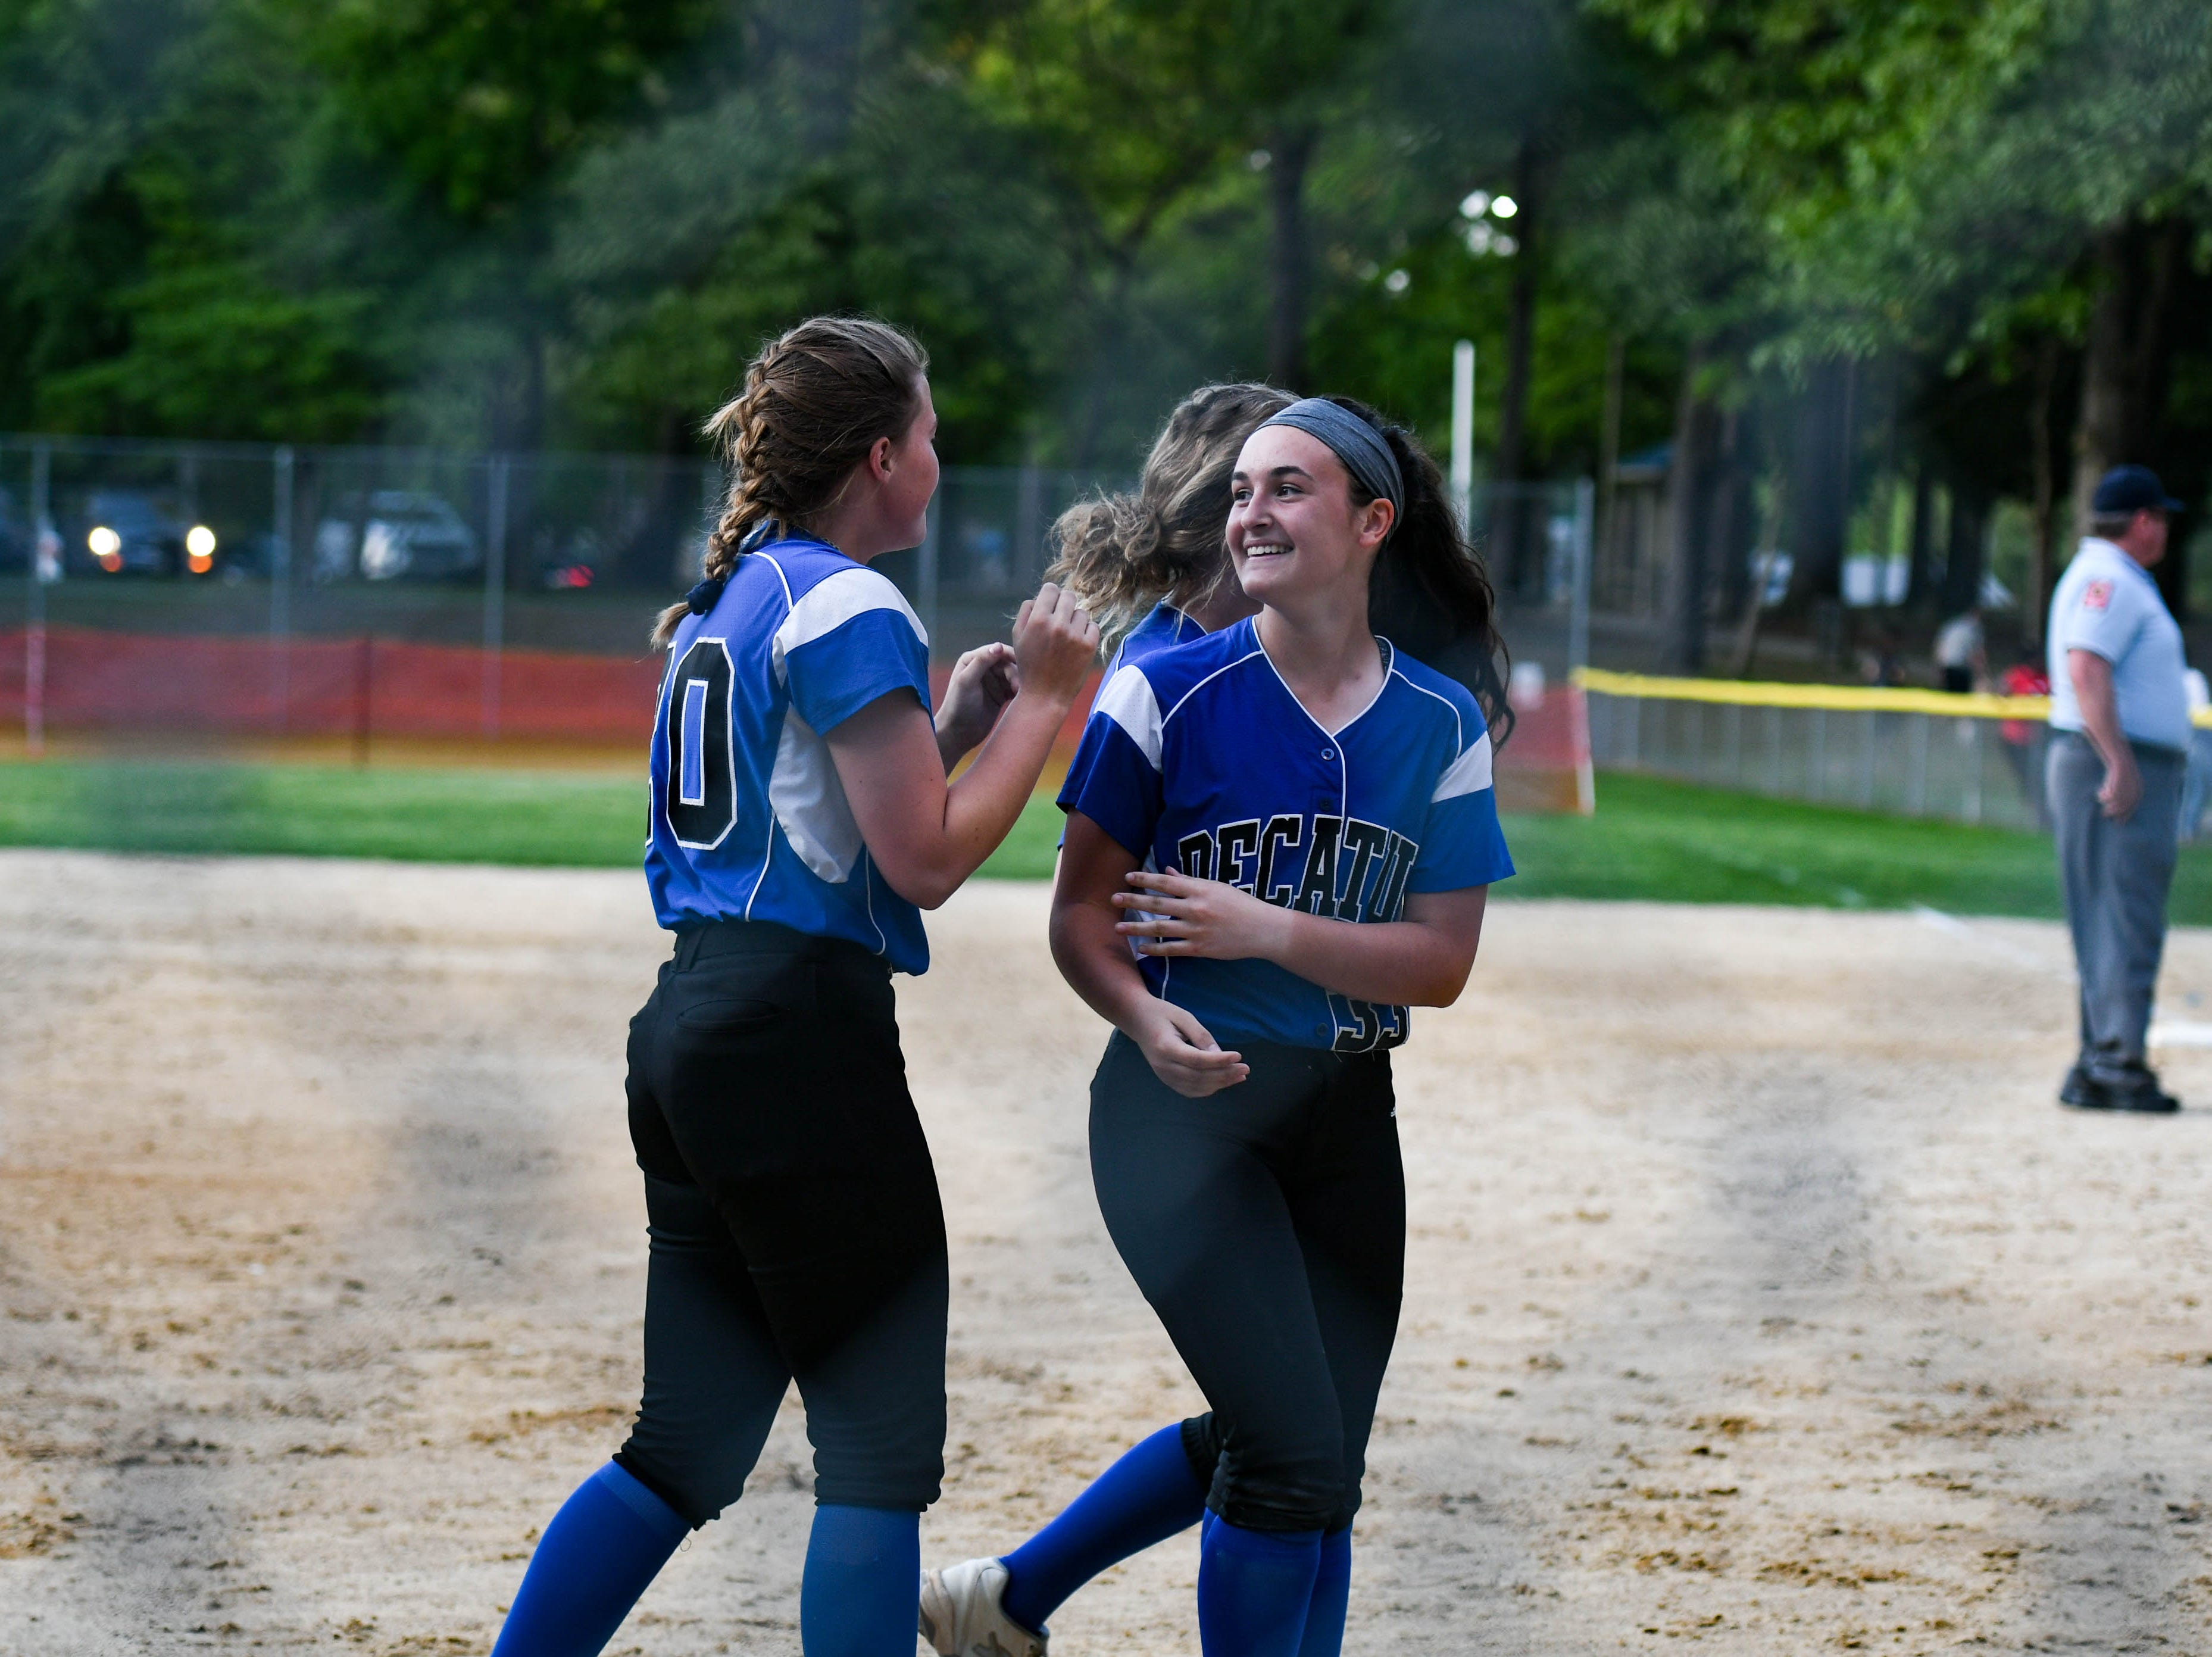 The Decatur team celebrates after winning the Bayside Softball Championship game against Colonel Richardson on Wednesday, May 8, 2019. The final score was 4 to 1.